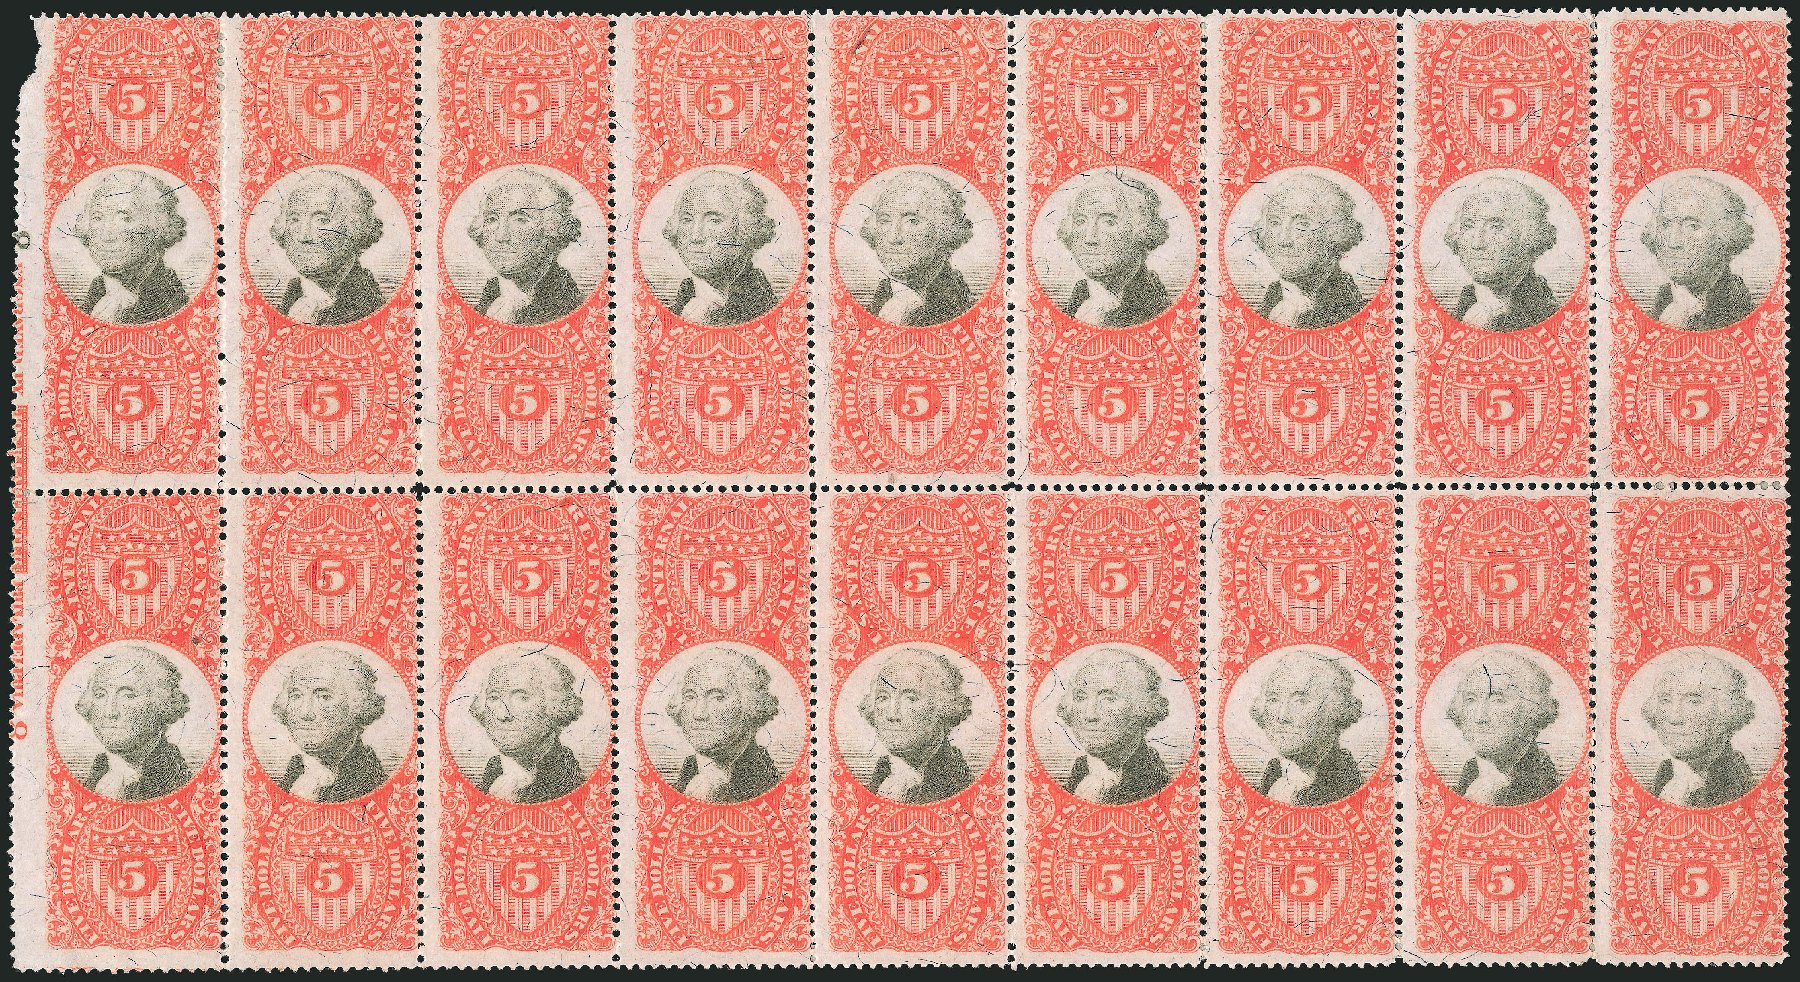 Prices of US Stamps Scott Catalog R148 - US$5.00 1872 Revenue Documentary . Robert Siegel Auction Galleries, Dec 2014, Sale 1089, Lot 517